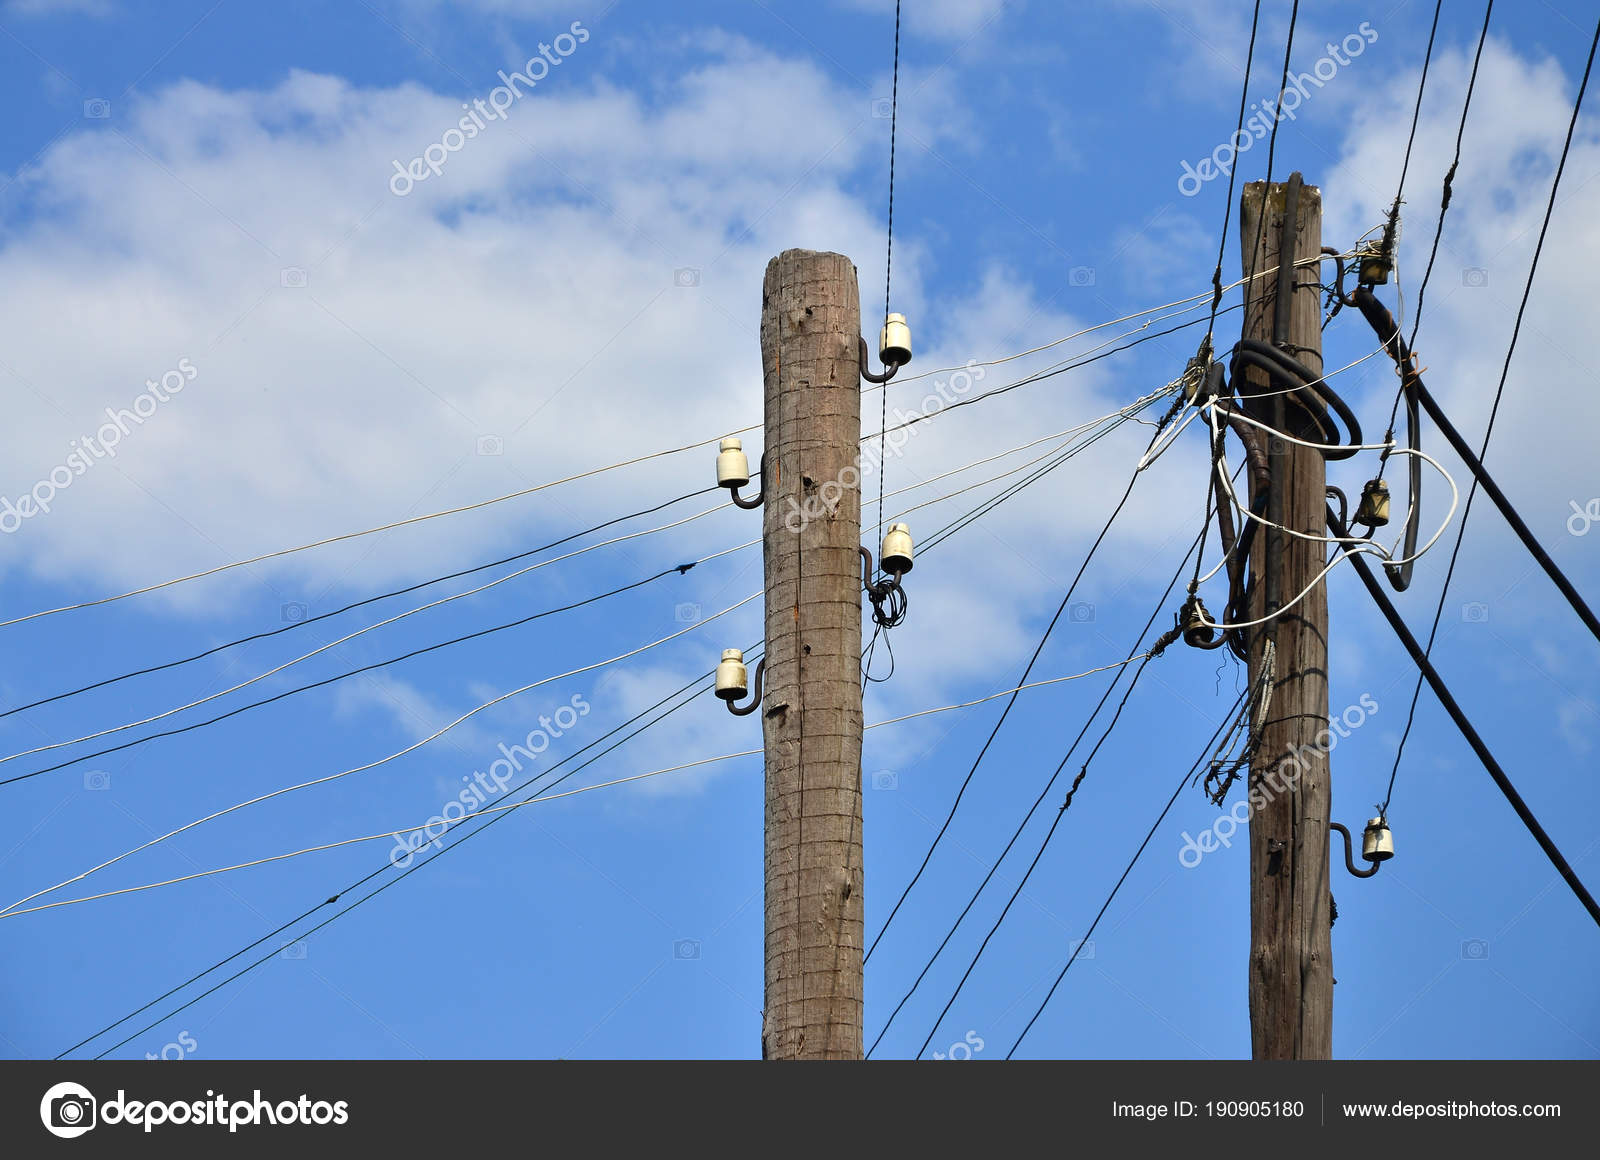 Wired Electric | Old Wooden Electric Pole Transmission Wired Electricity Background